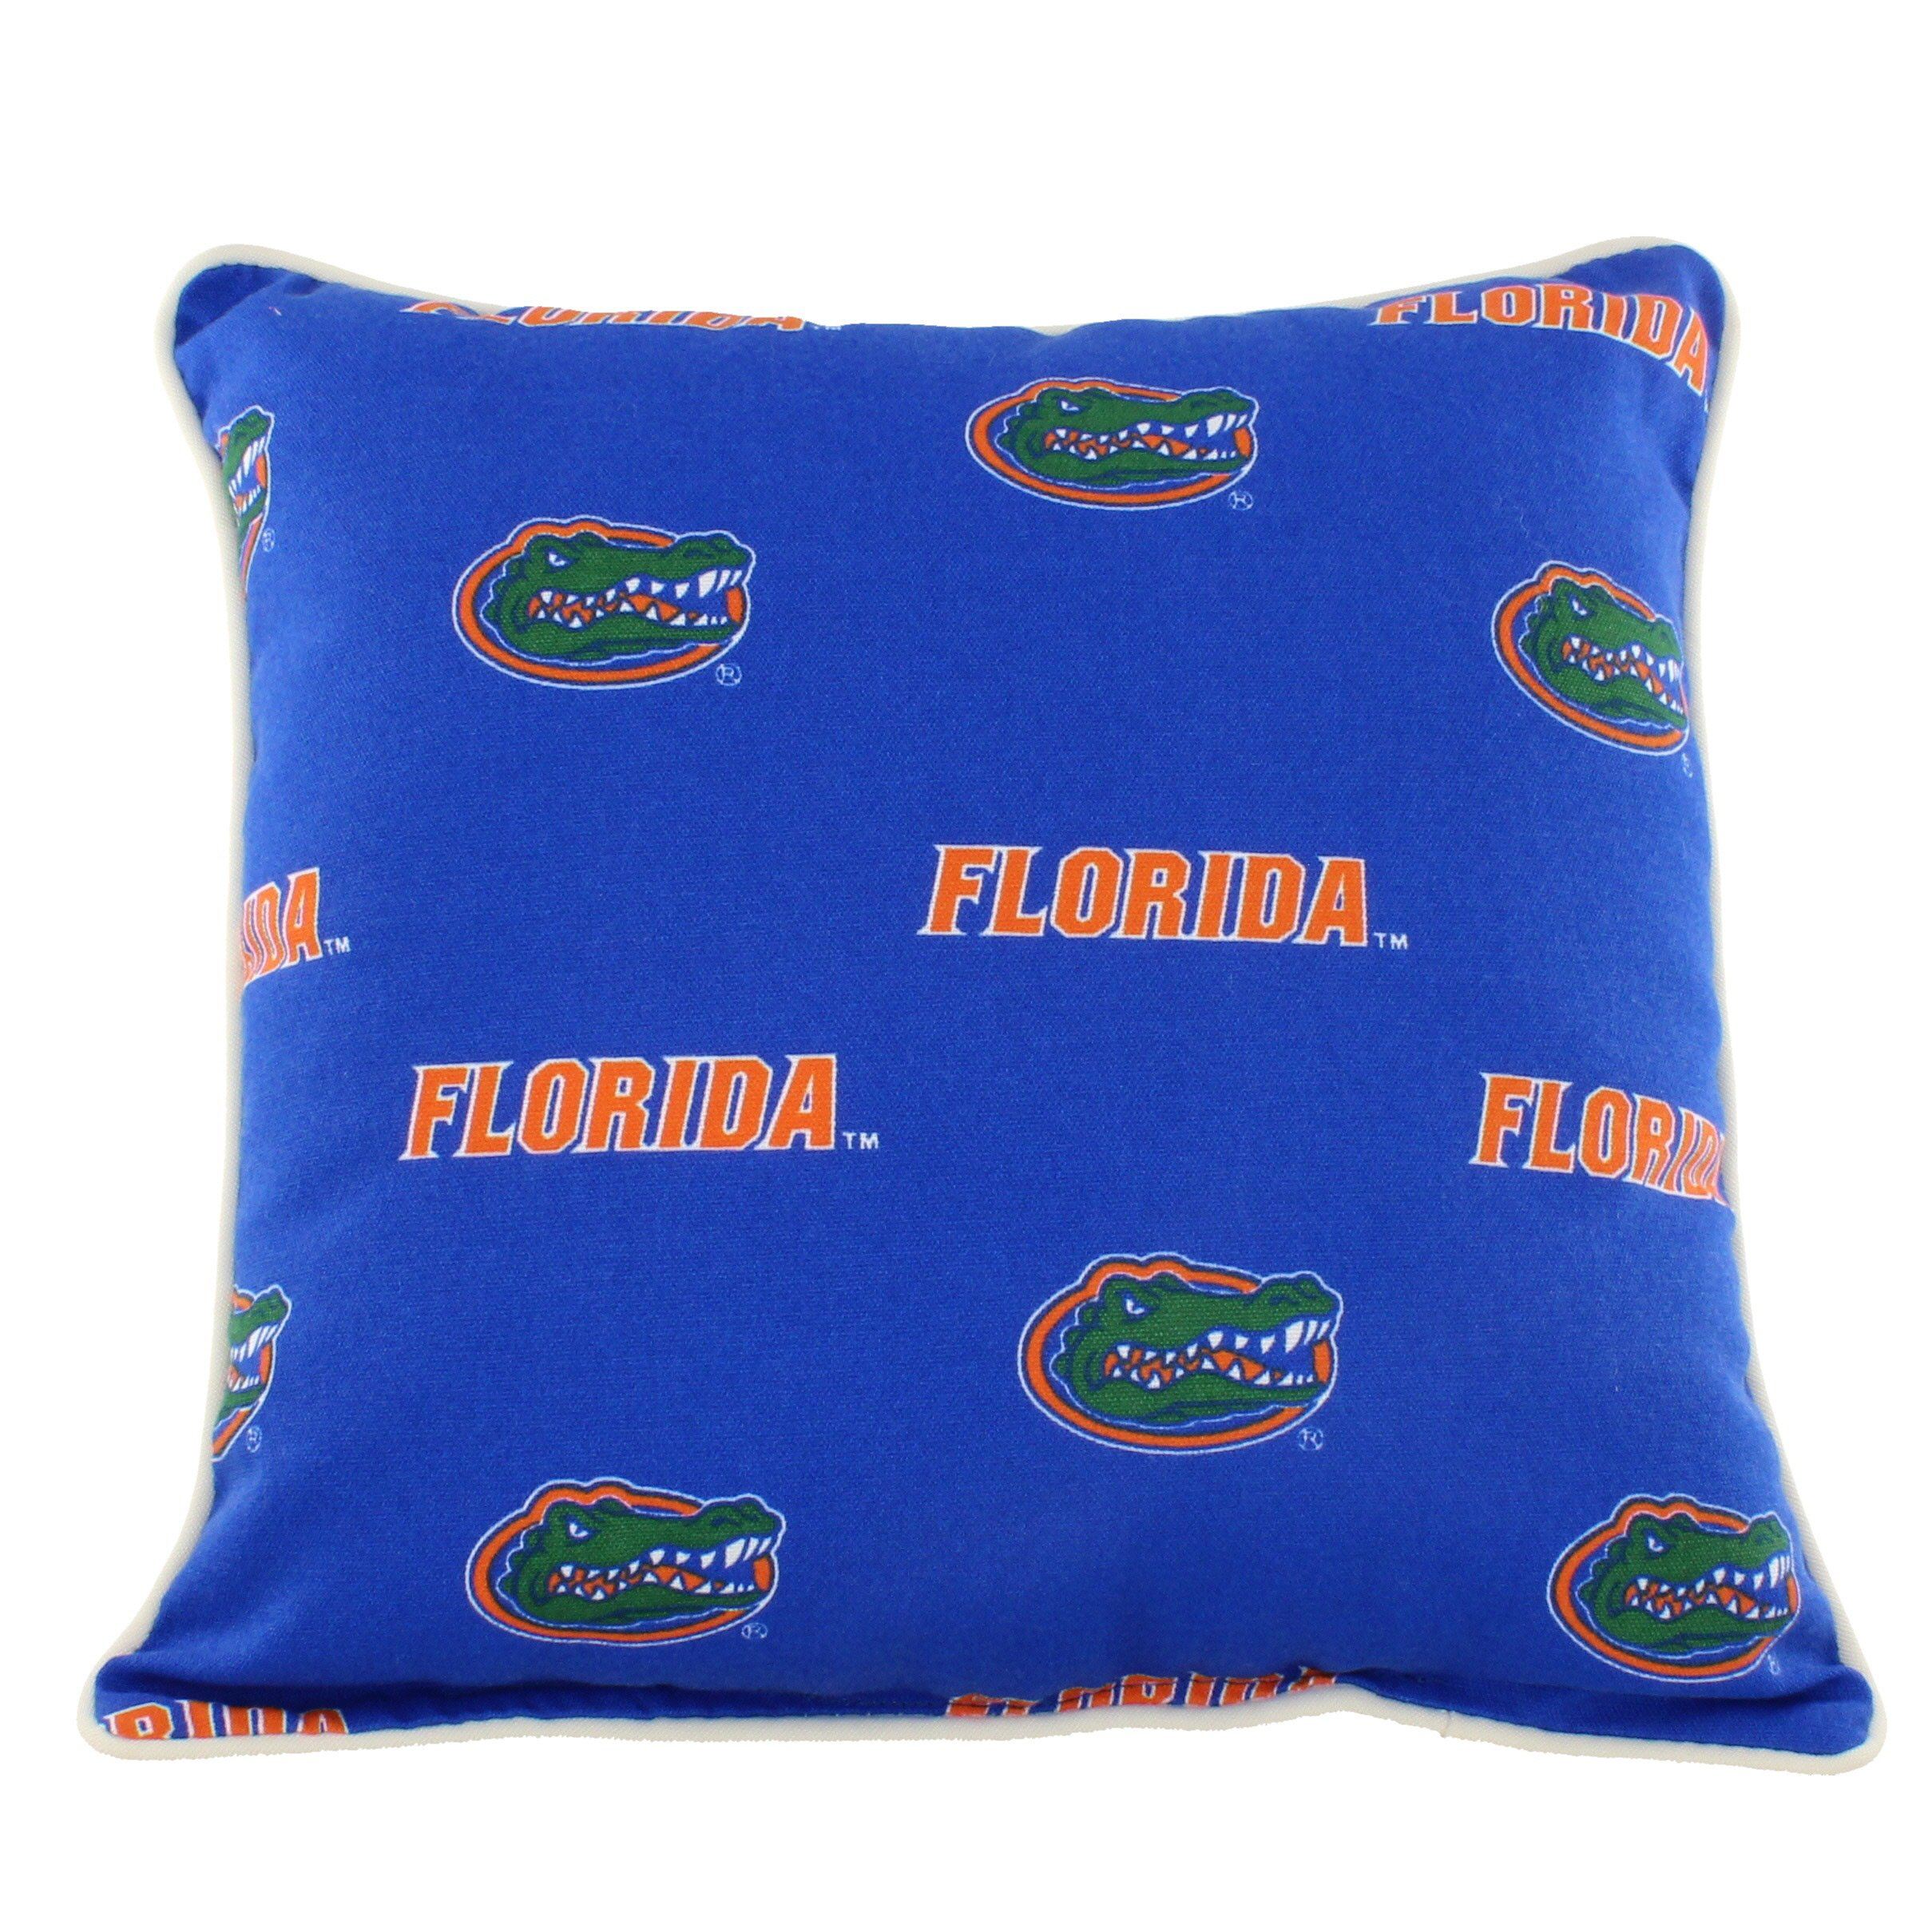 College Covers FLOODP Florida Gators Outdoor Decorative Pillow, 16'' x 16'', Blue